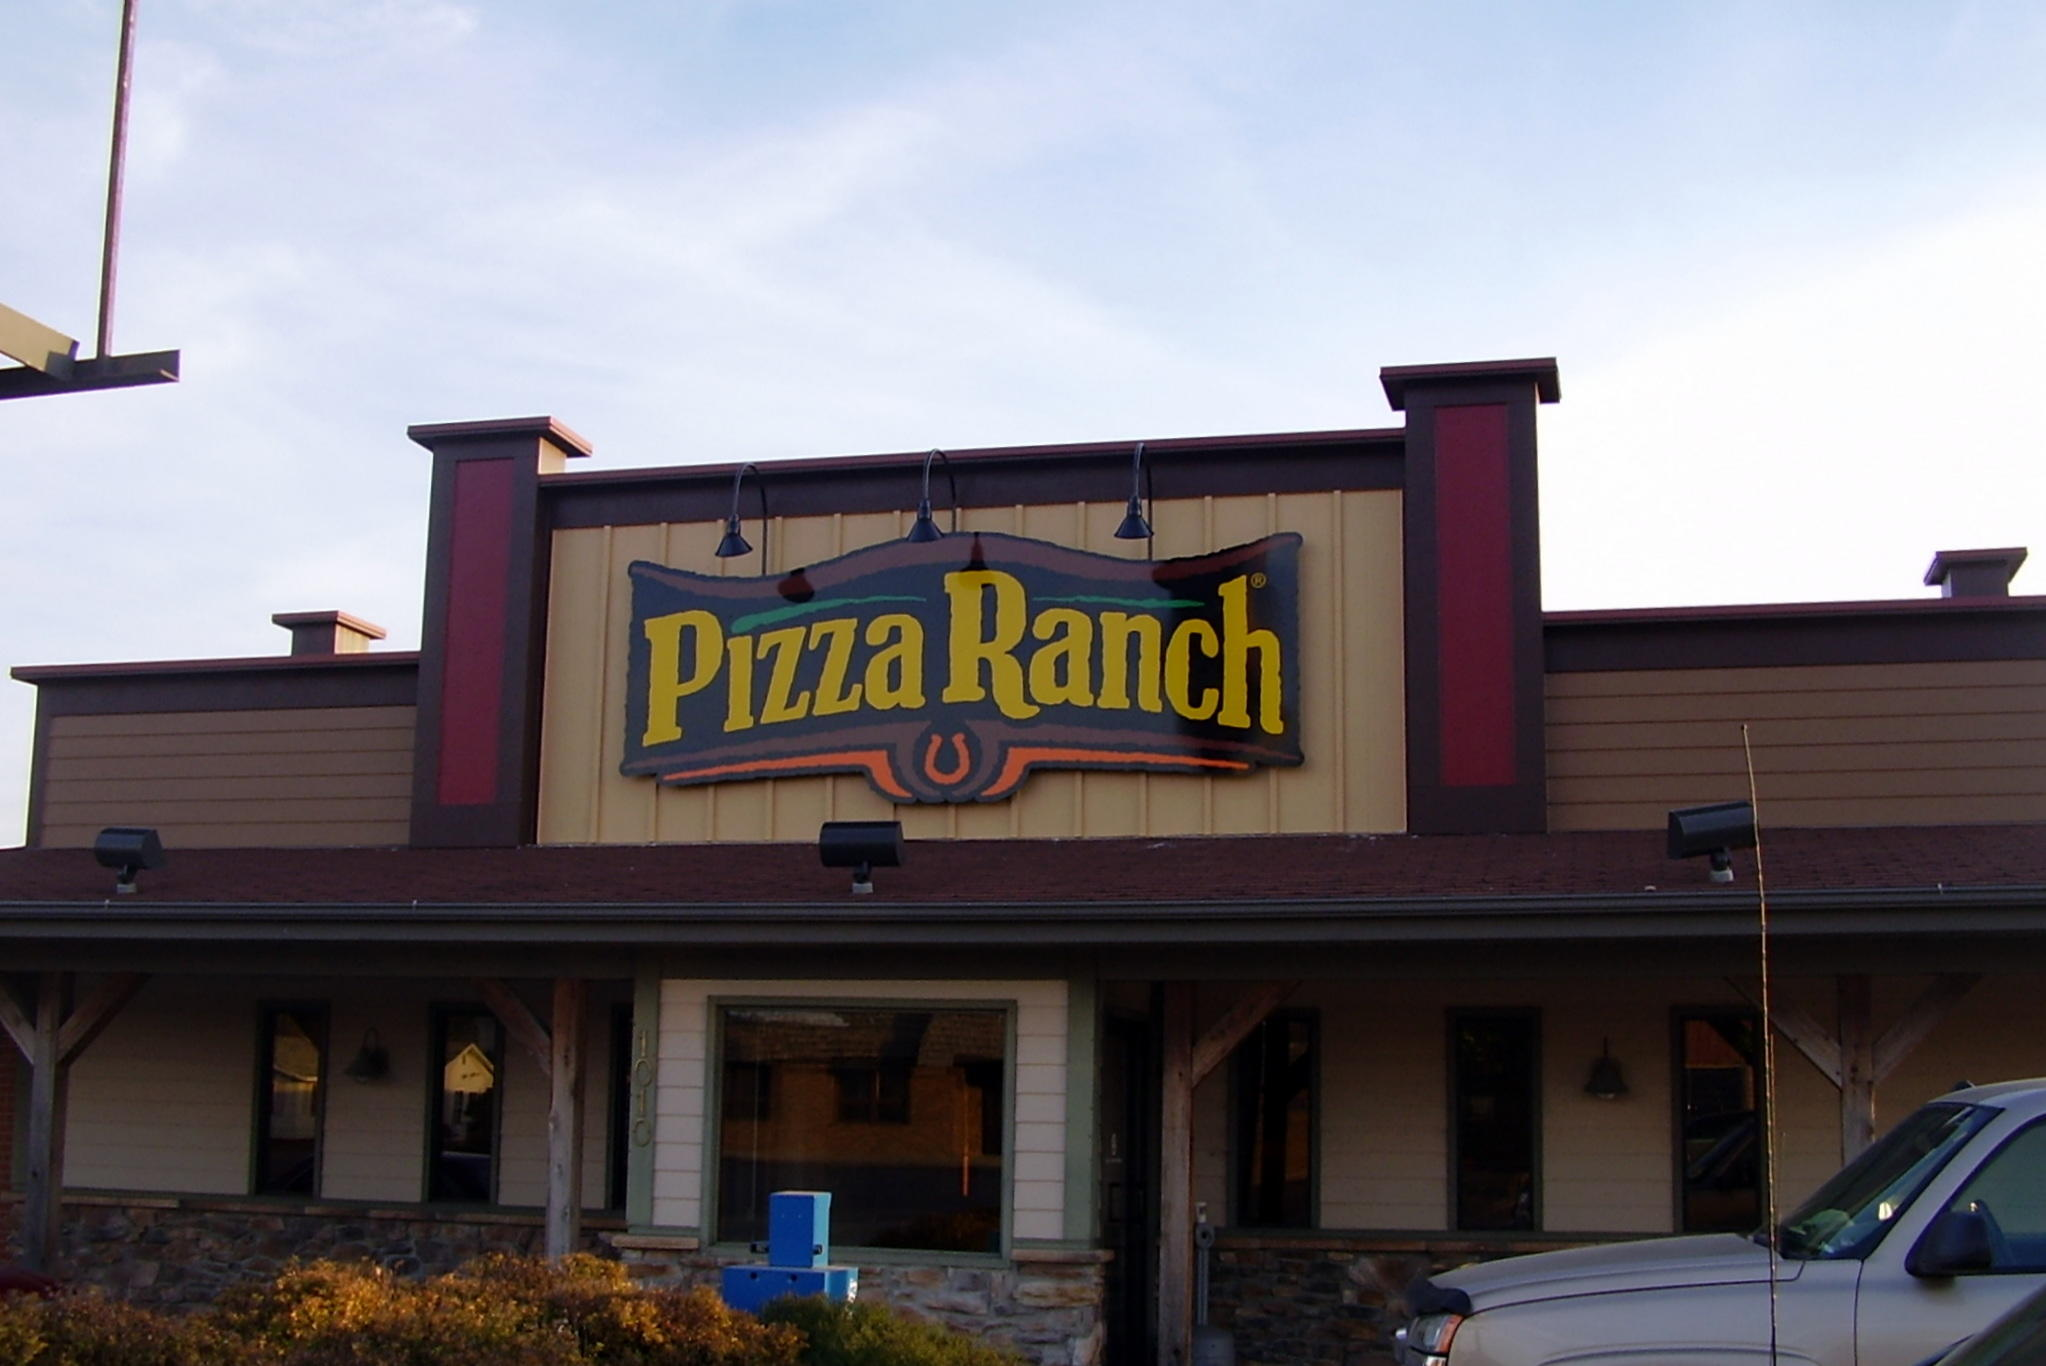 Pizza Ranch's Restaurant Support Center in Orange City, Iowa has been named a Top Iowa Workplace the past three years. Our team members say they enjoy doing meaningful work for a company with a Vision to glorify God by positively impacting the world.